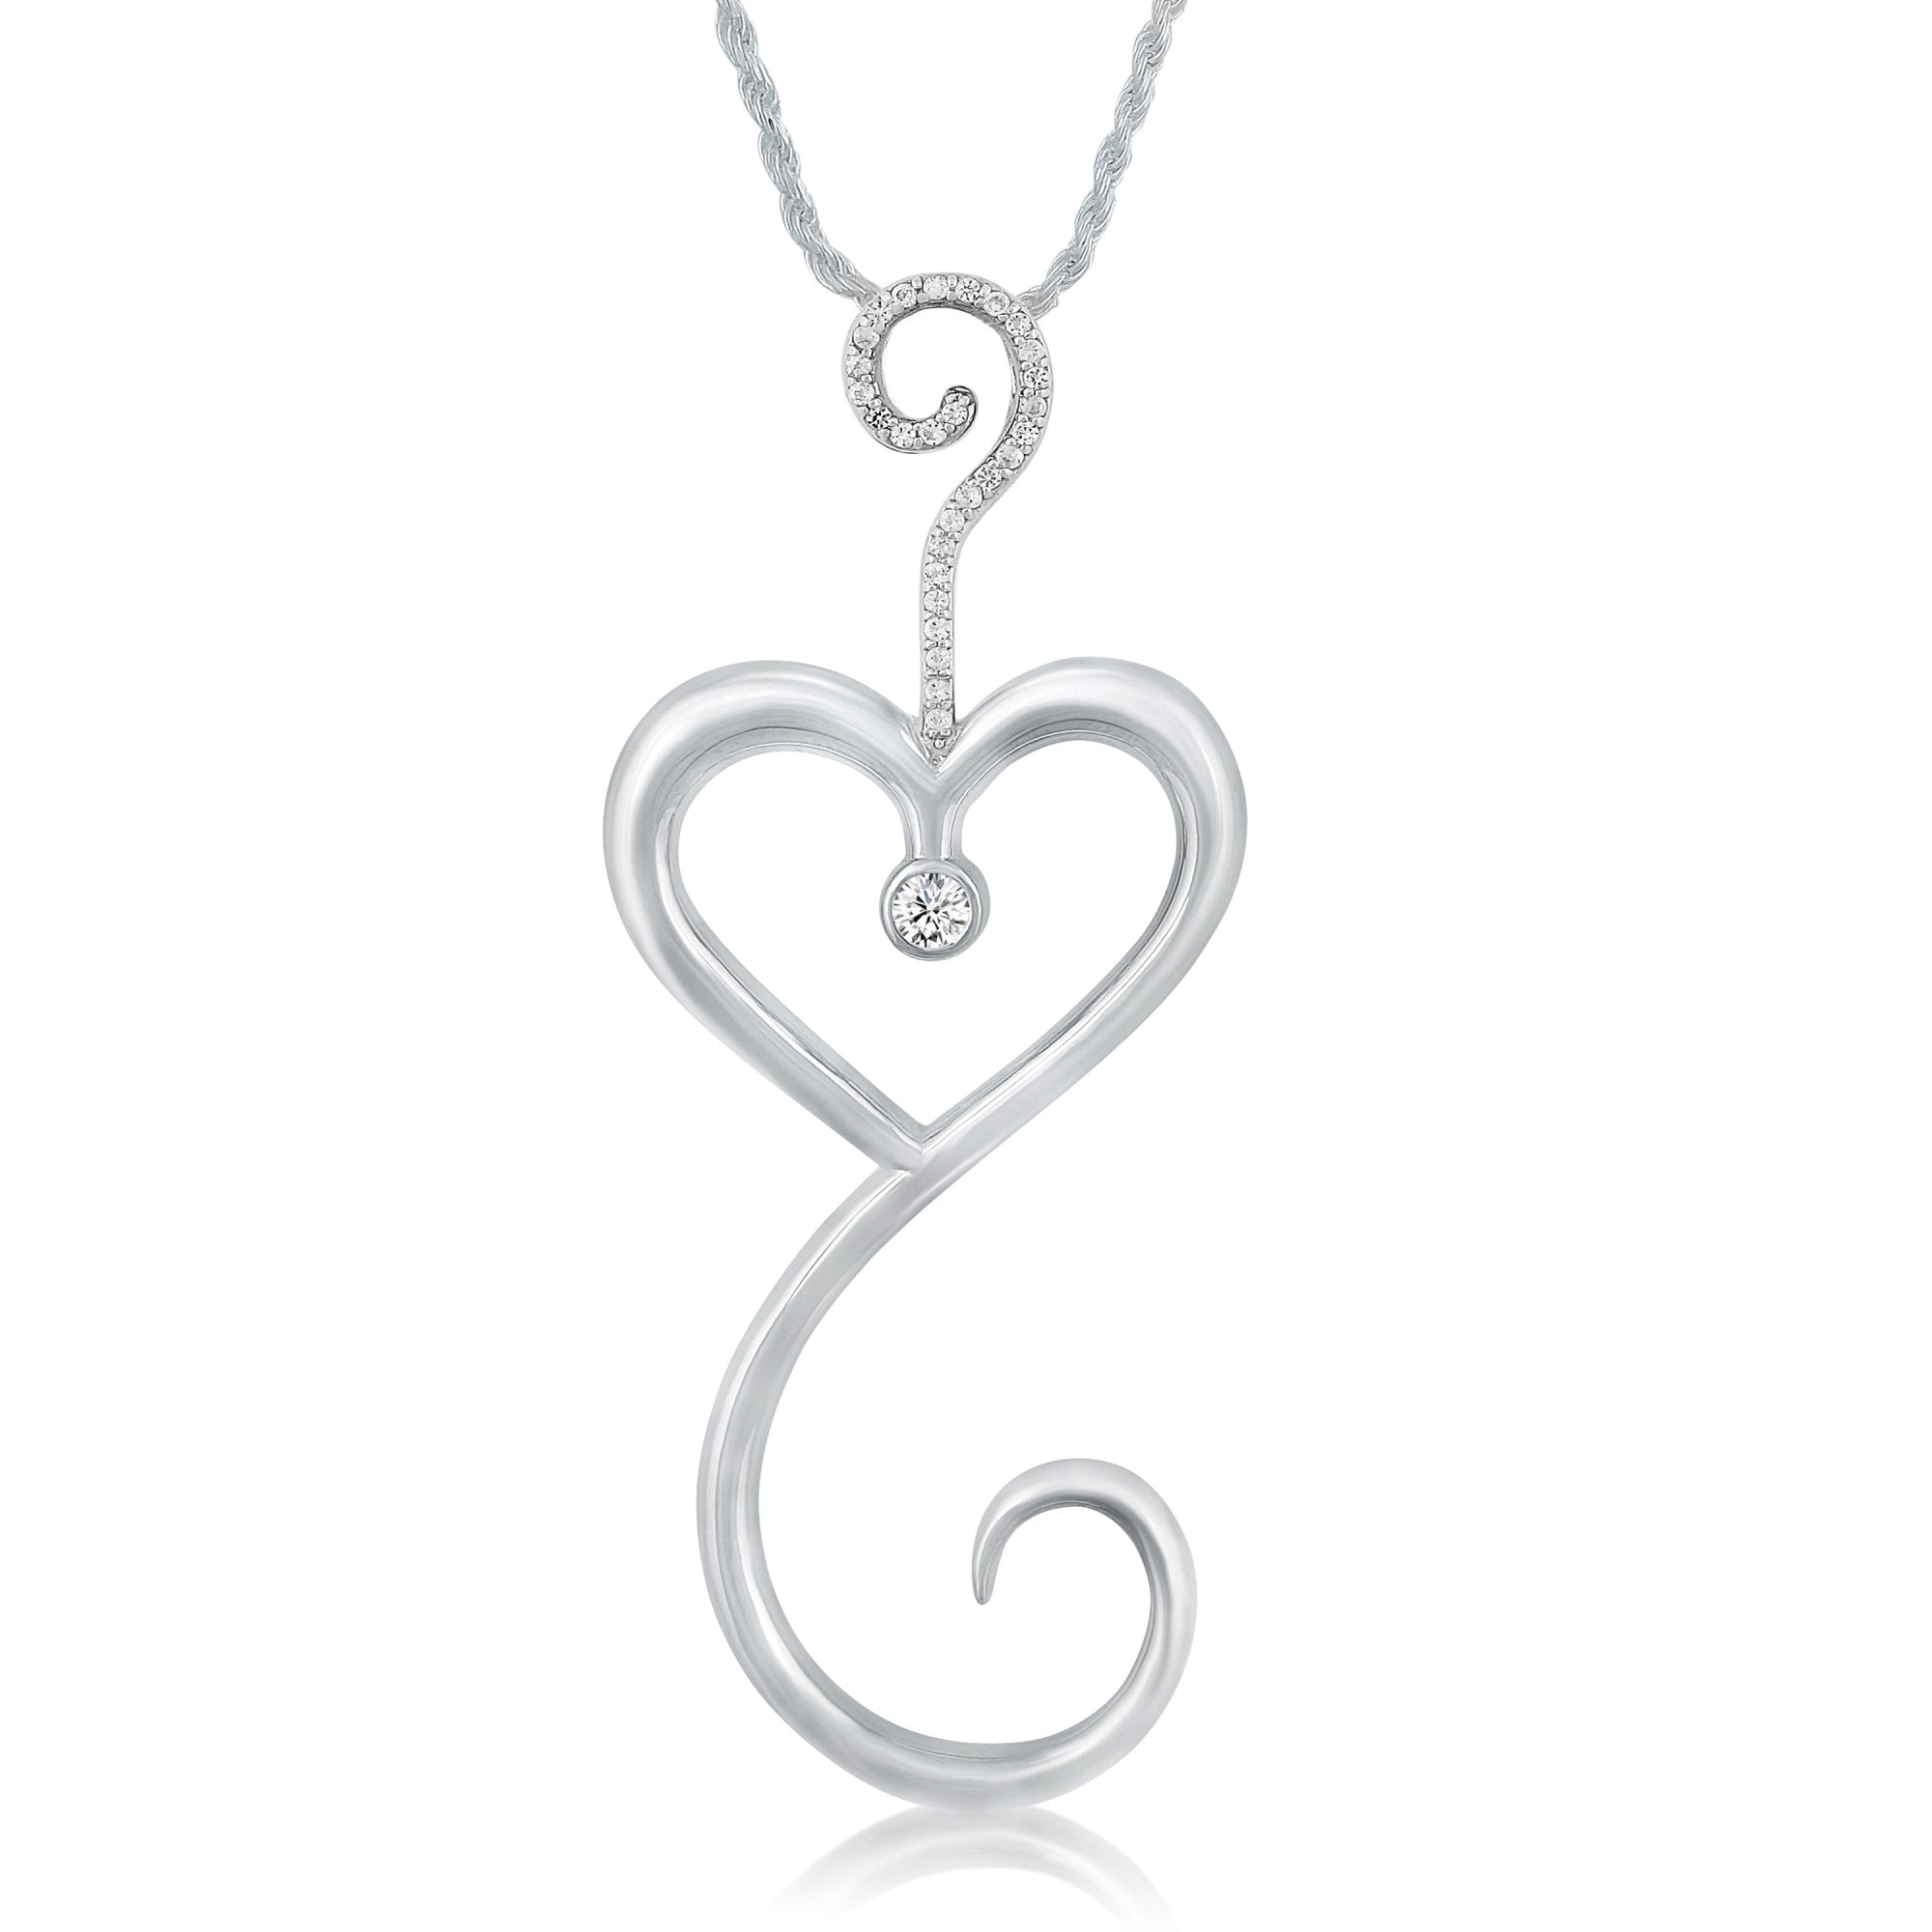 Intrikit Heart - Solid Sterling*Non Tarnish*Silver .925 with White Topaz  Pave and a 3mm White Sapphire Center Stone